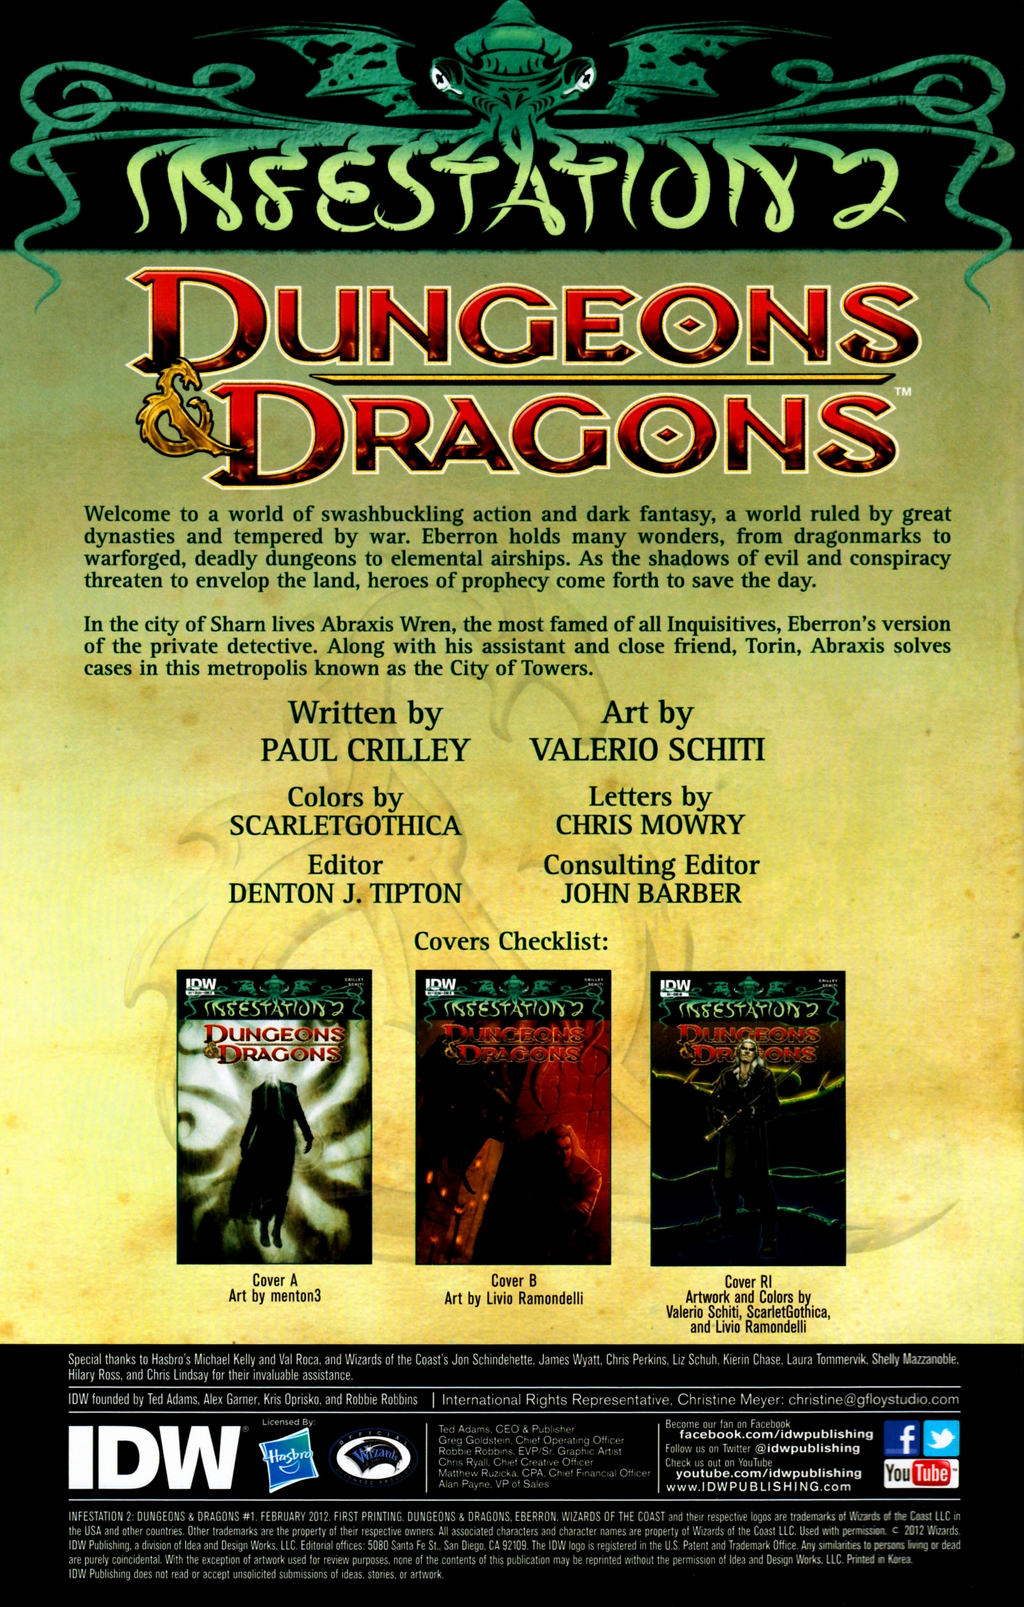 Read online Infestation 2: Dungeons & Dragons comic -  Issue #1 - 3